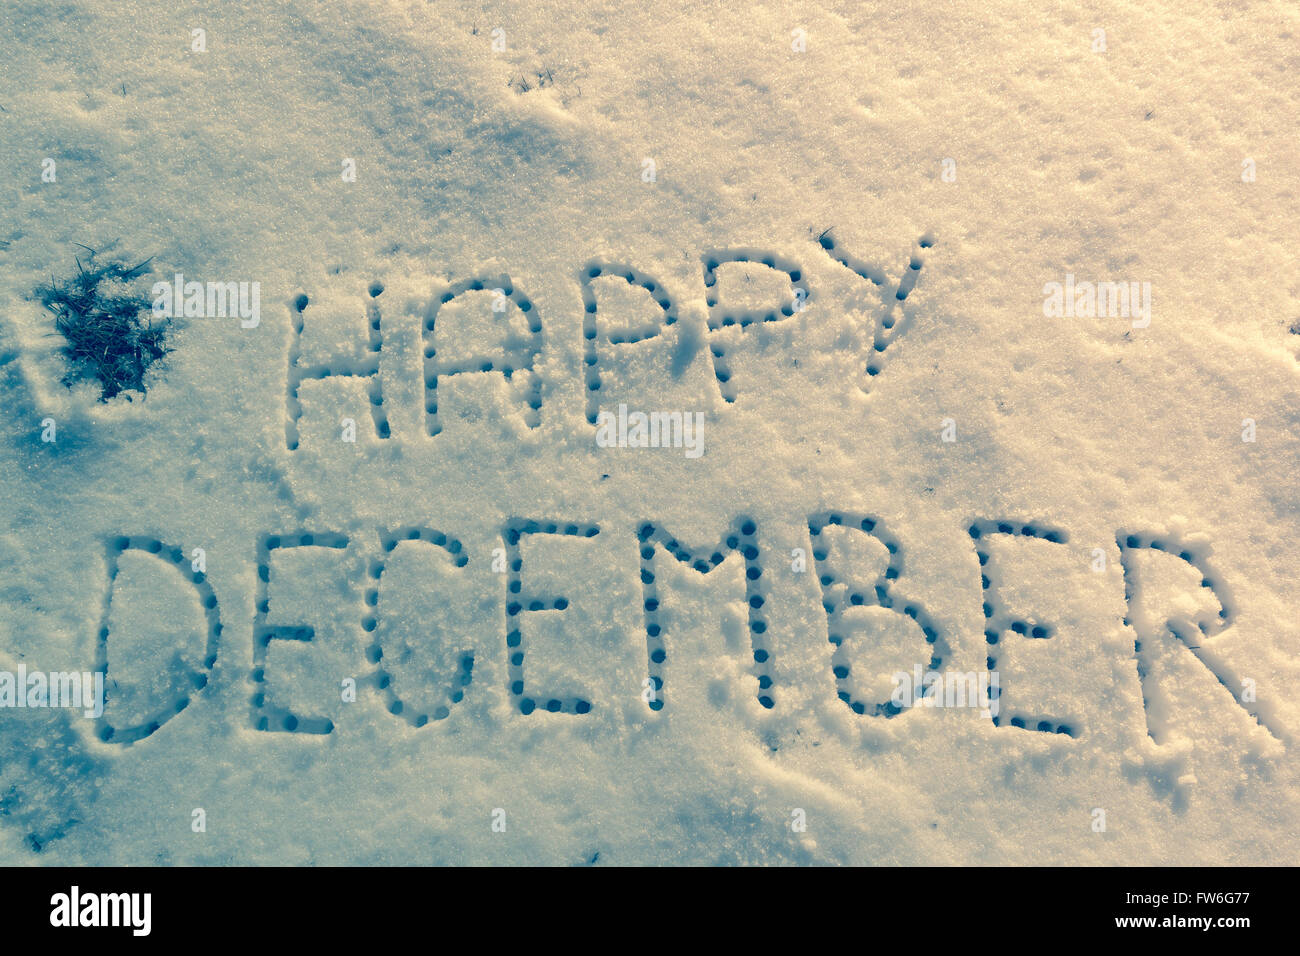 Written Words Happy December On A Snow Field Stock Photo 101562699